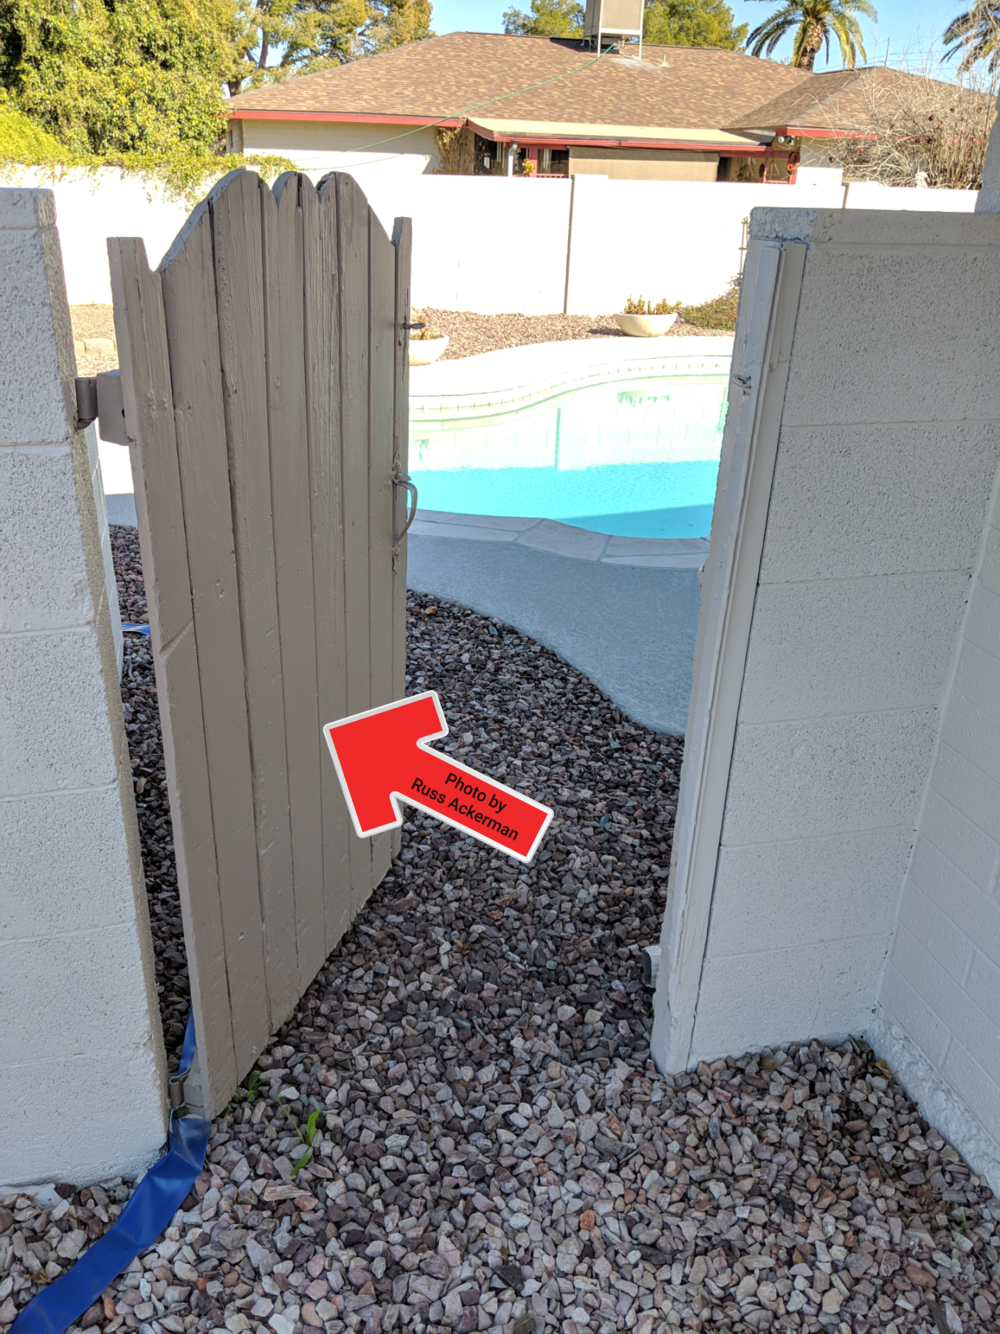 Gates leading to a pool area should swing outwards away from the pool and be self-closing and self-latching.  https://goo.gl/E4Y9JE